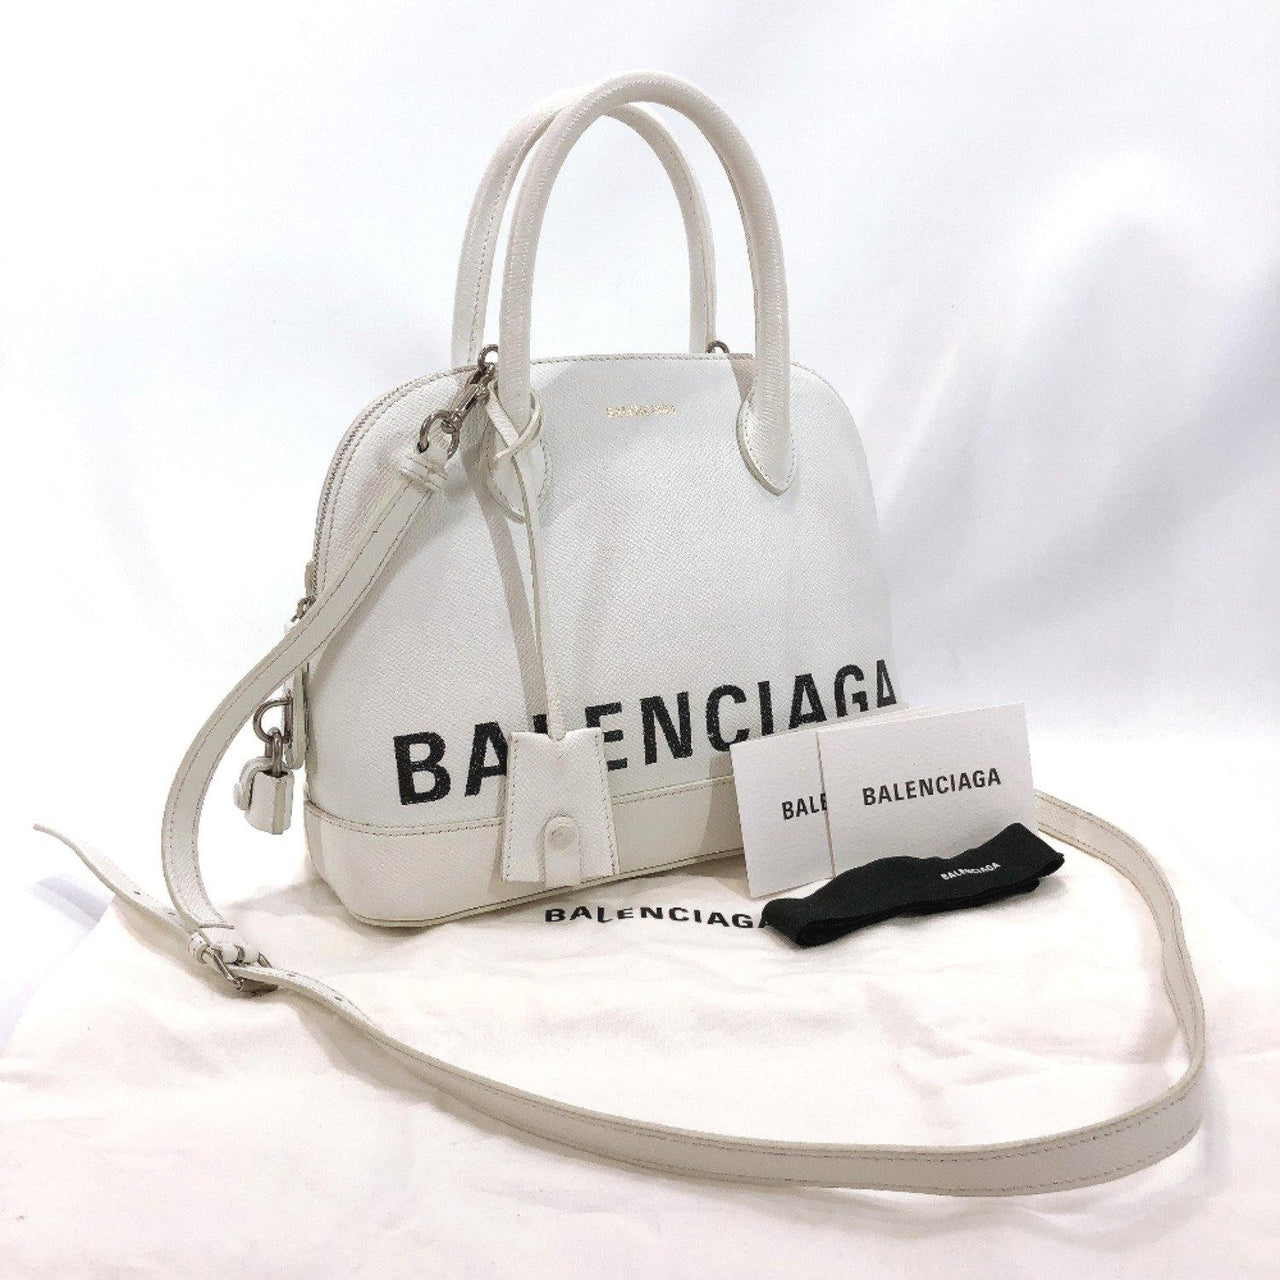 BALENCIAGA Shoulder Bag 518873 Bill Top Handle S leather white Women Used - JP-BRANDS.com